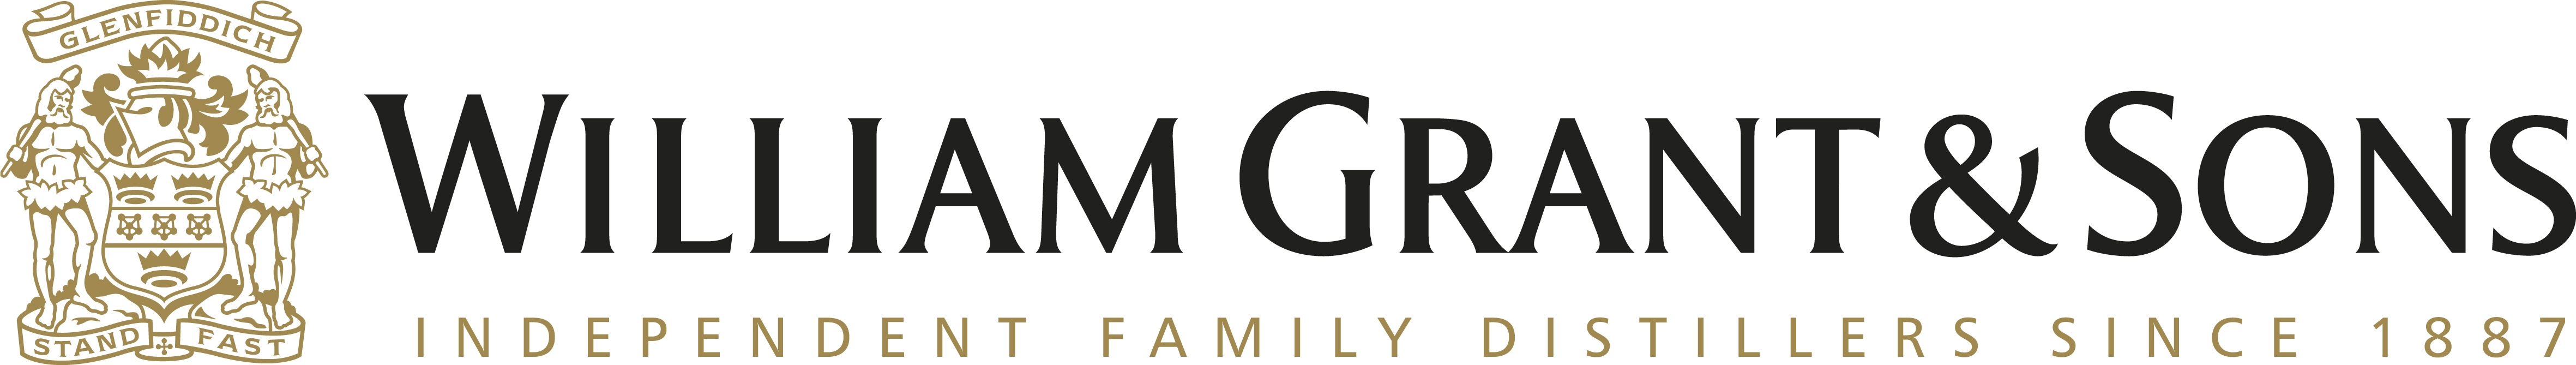 William Grant & Son Limited